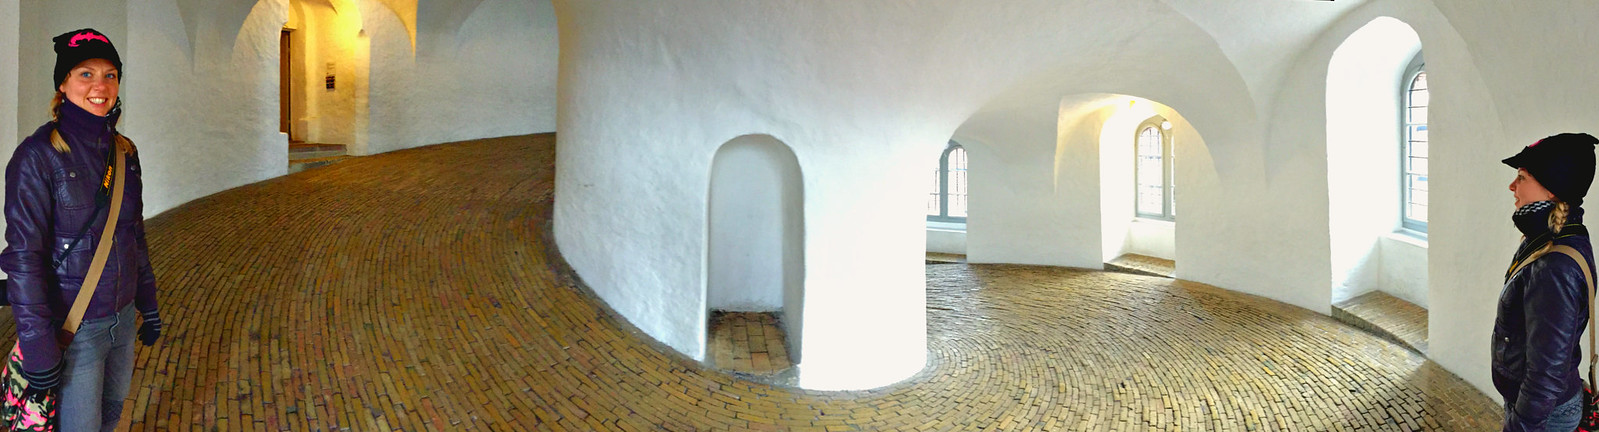 Around the corner is another round - The Round Tower in Copenhagen | Live now – dream later travel blog